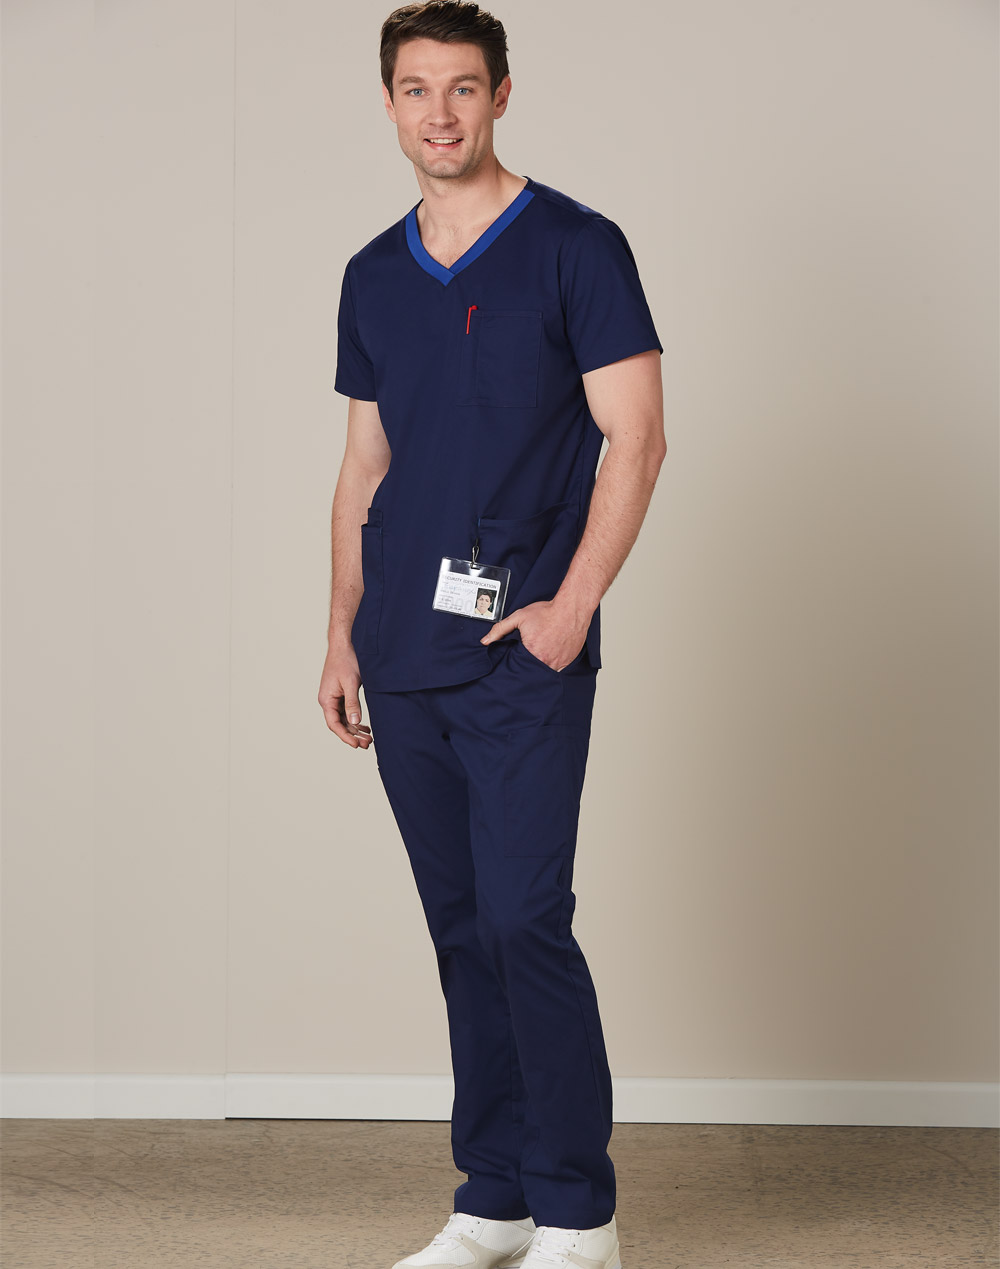 Order Mens v-Neck Contrast Trim Scrub Tops in Australia